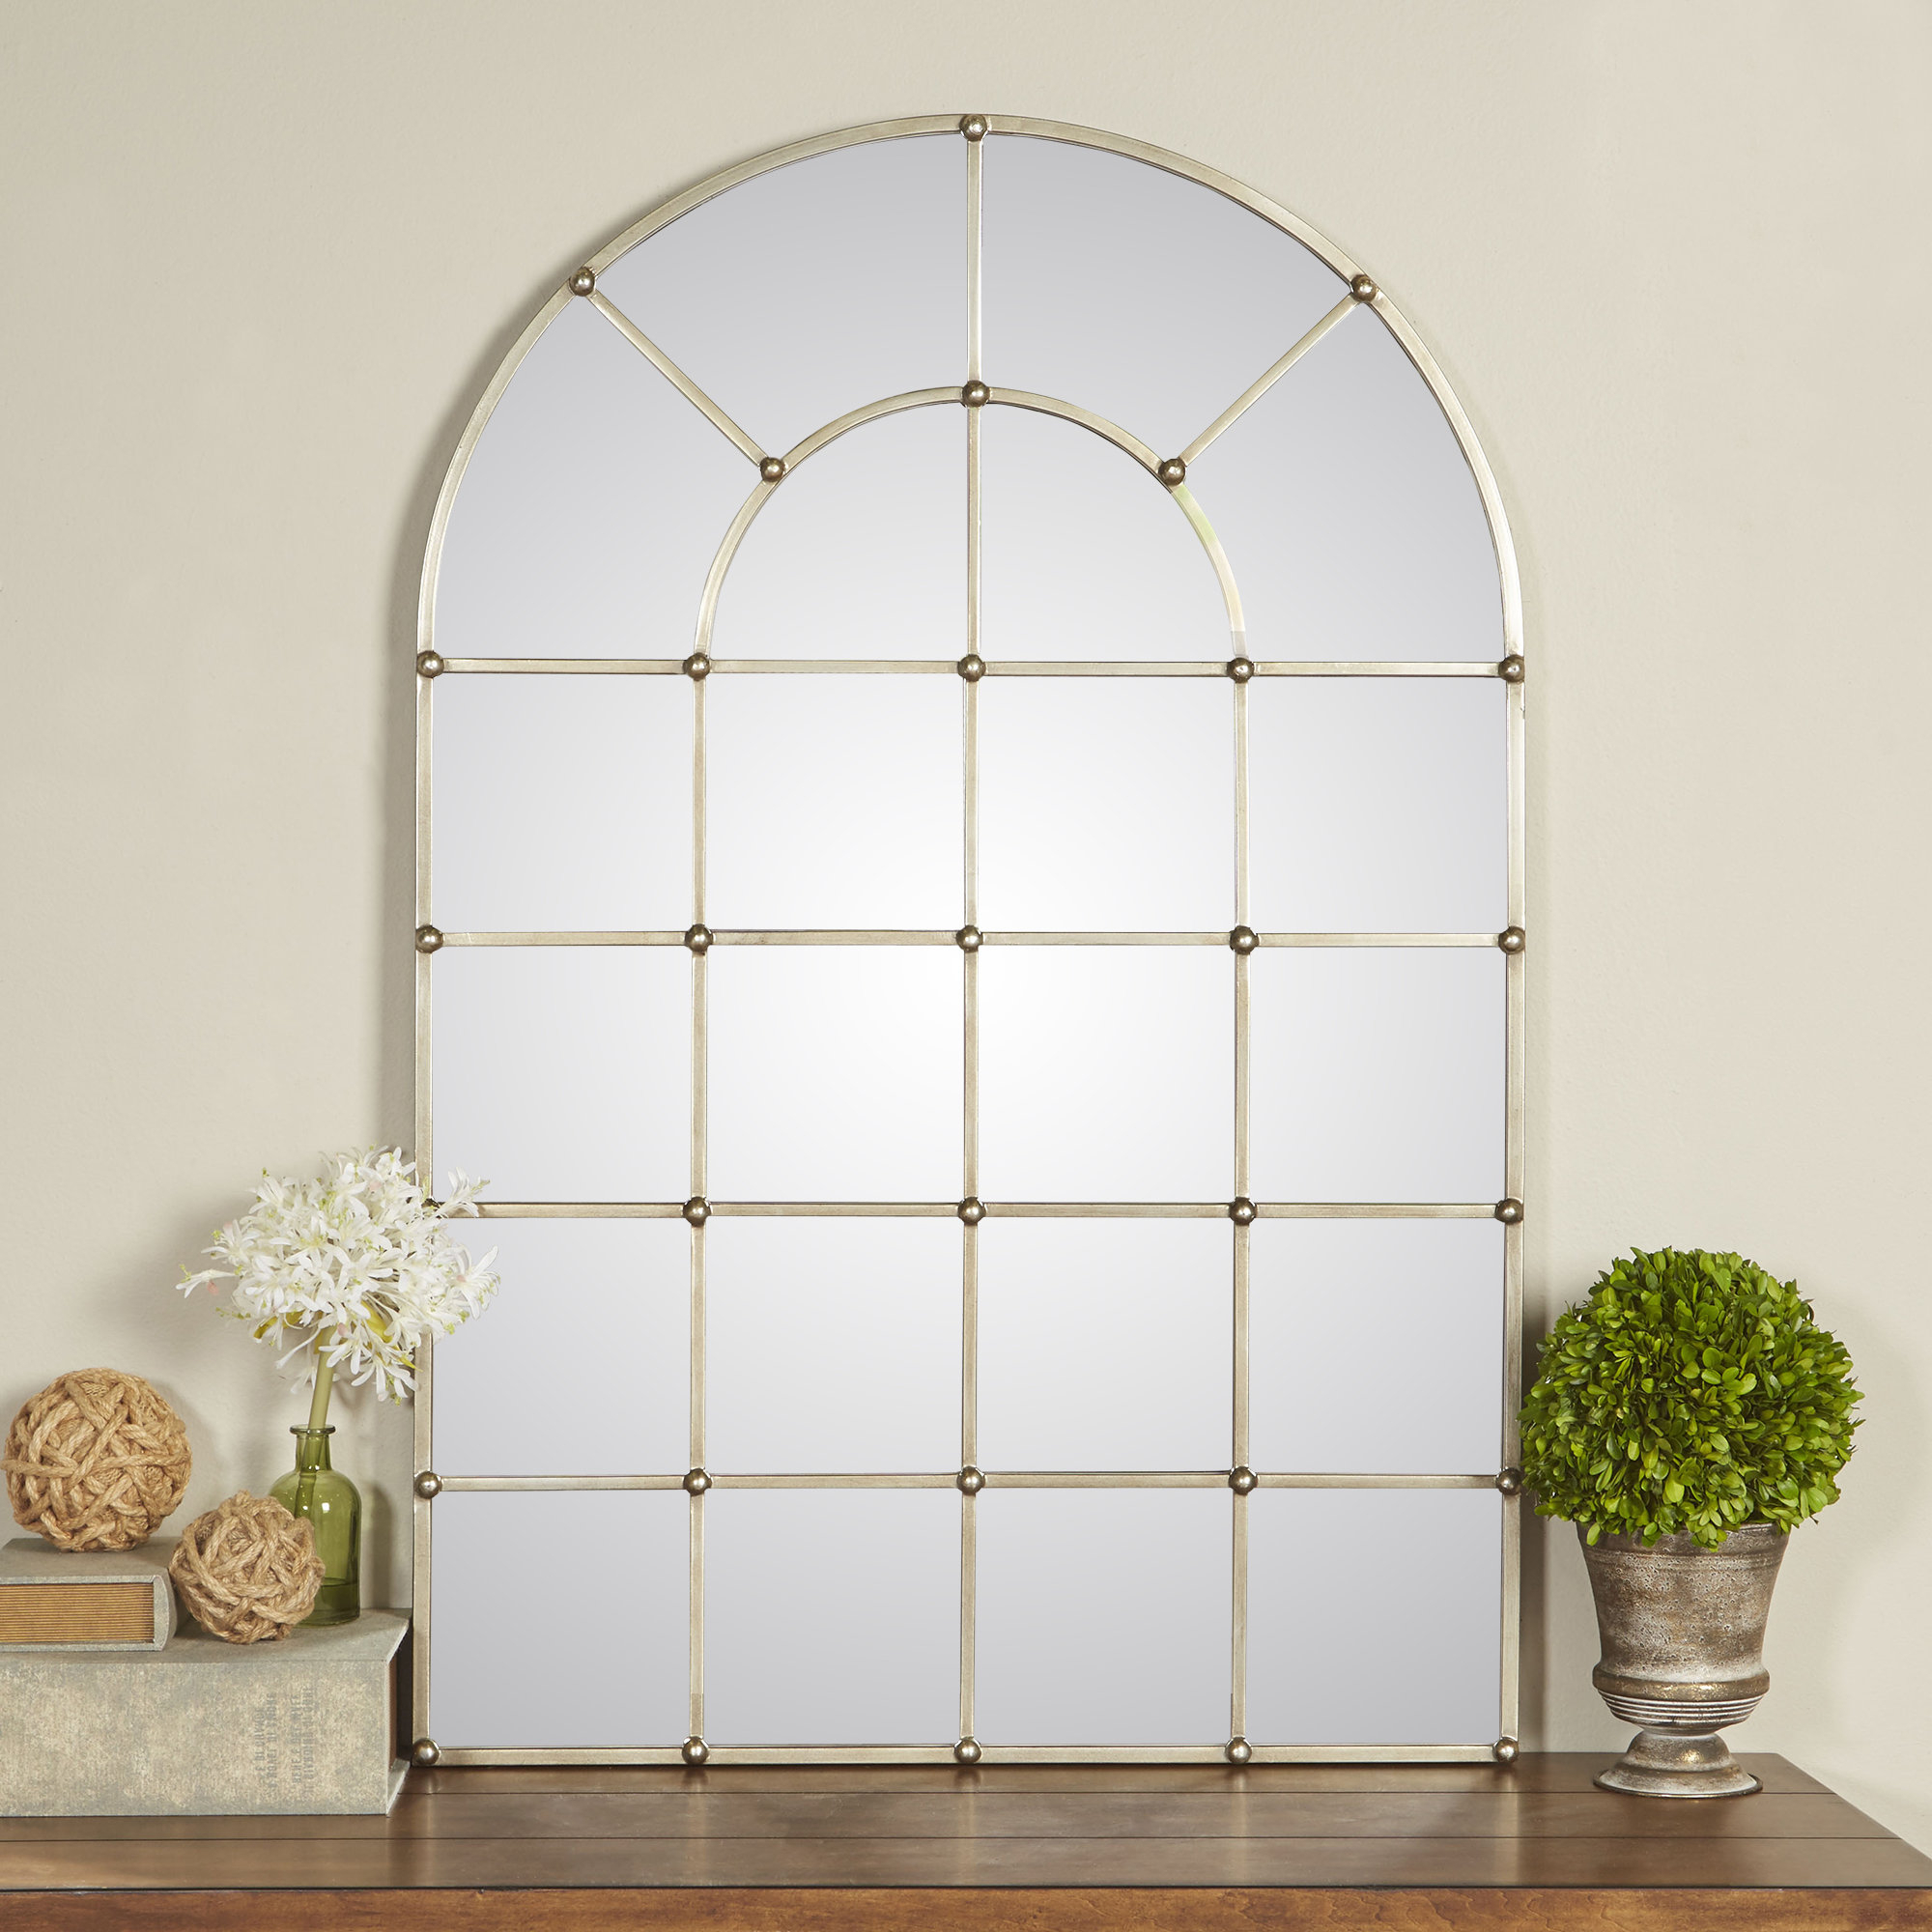 One Allium Way Metal Arch Window Wall Mirror & Reviews Throughout Most Popular Metal Arch Window Wall Mirrors (View 10 of 20)